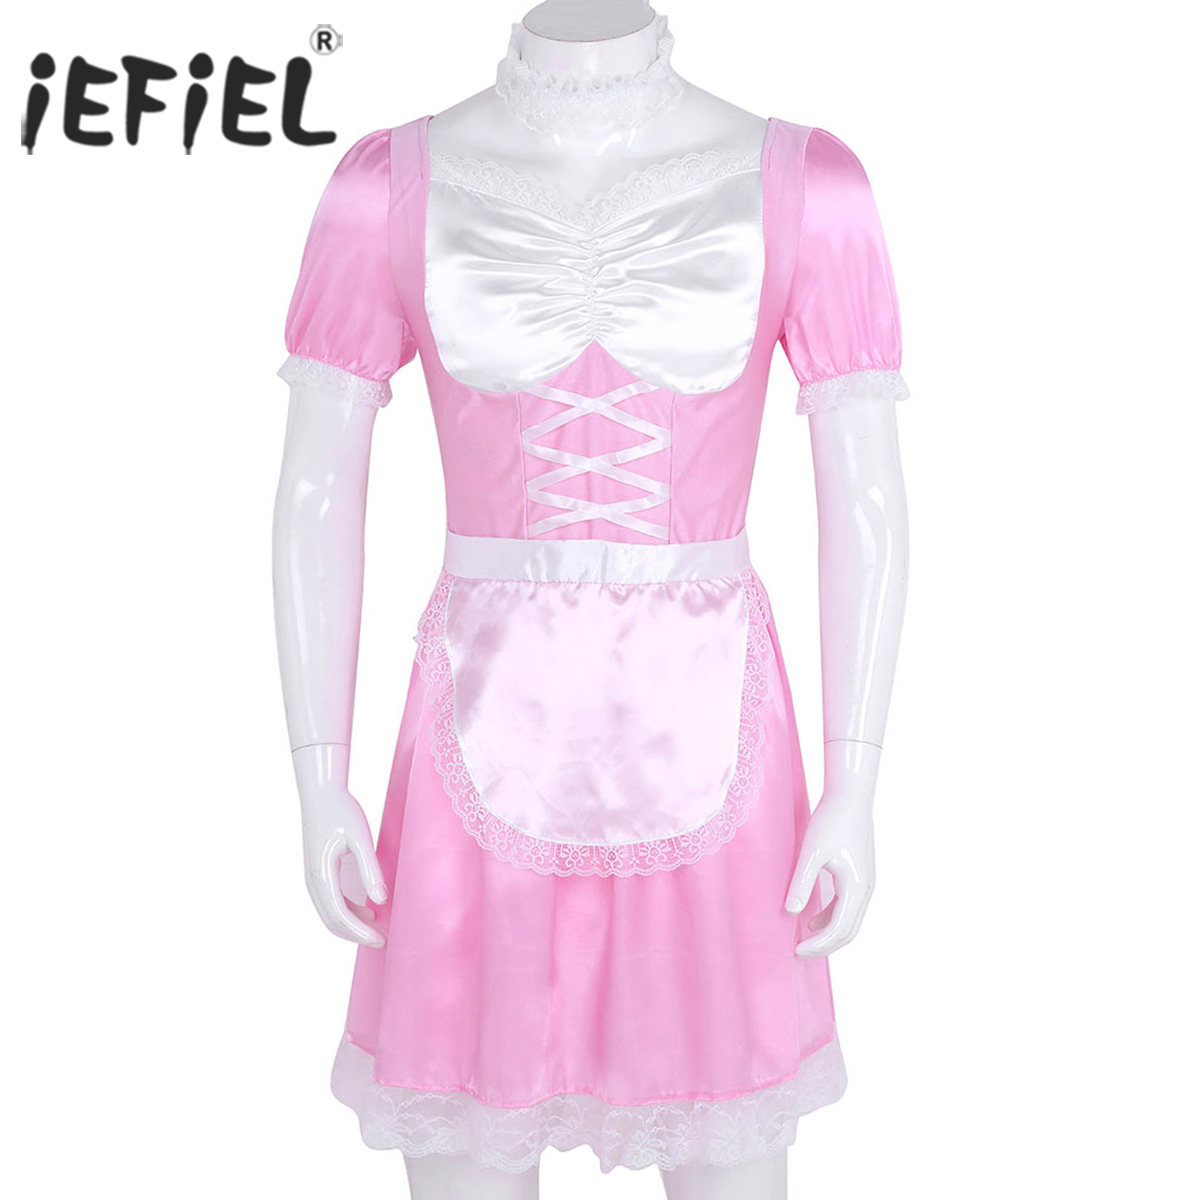 Amateur Porn Custome The Witcher top 10 largest cosplay maid man ideas and get free shipping